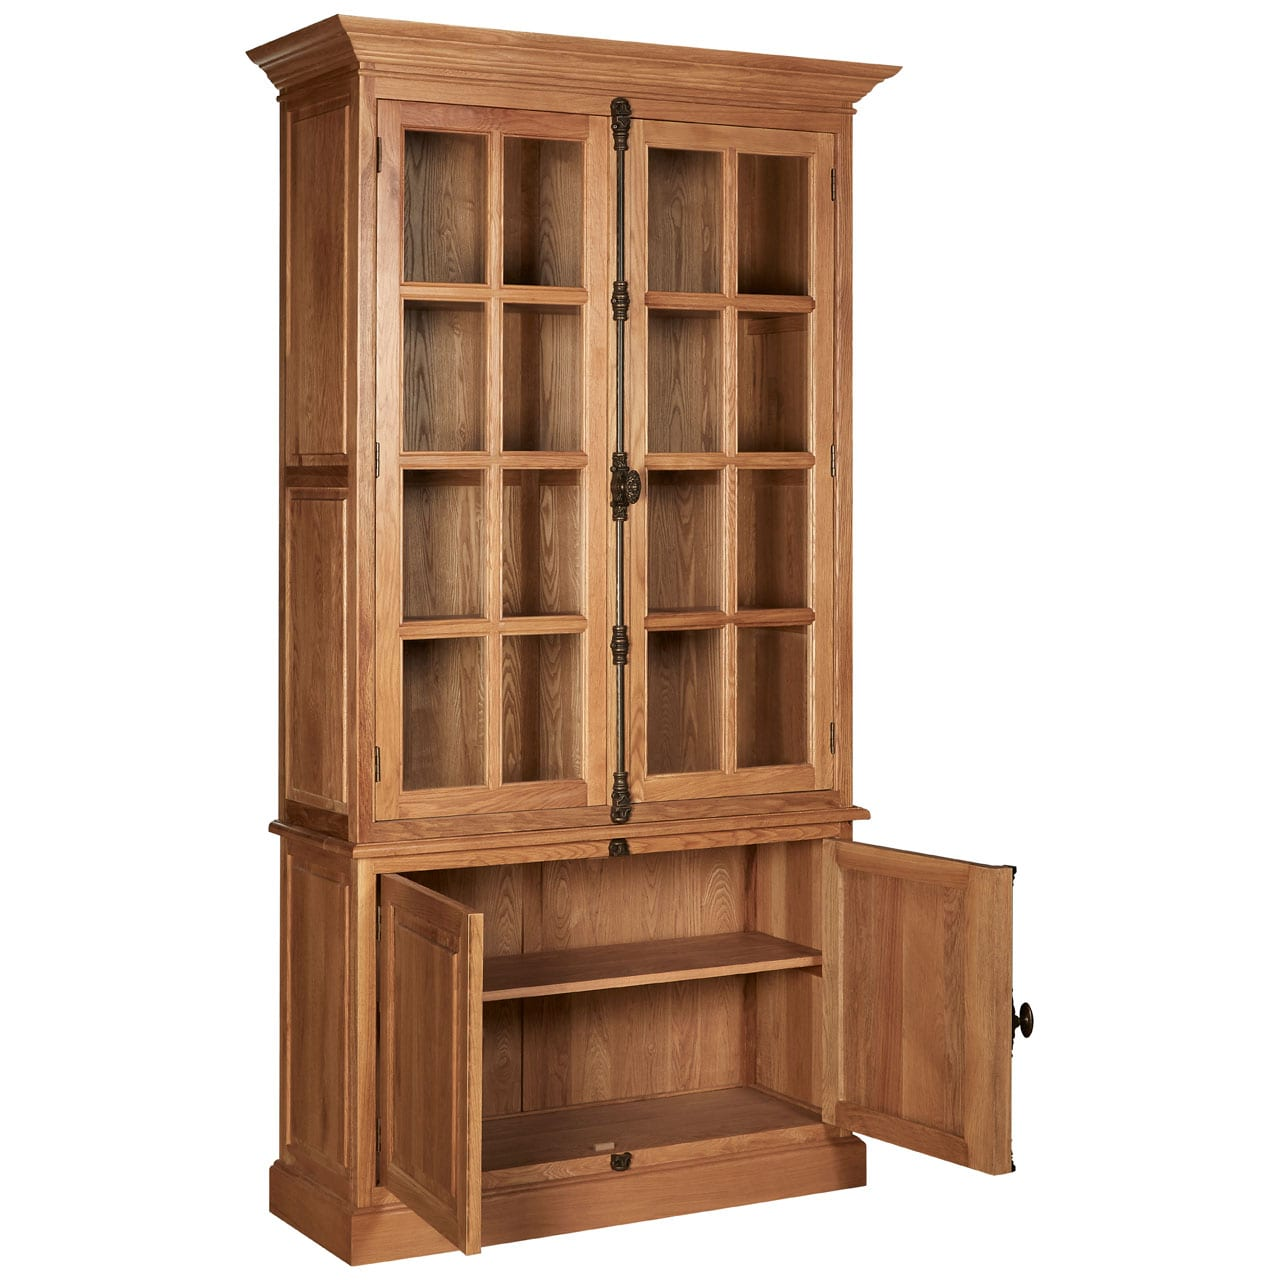 Rouen Cabinet With 3 Upper Shelves